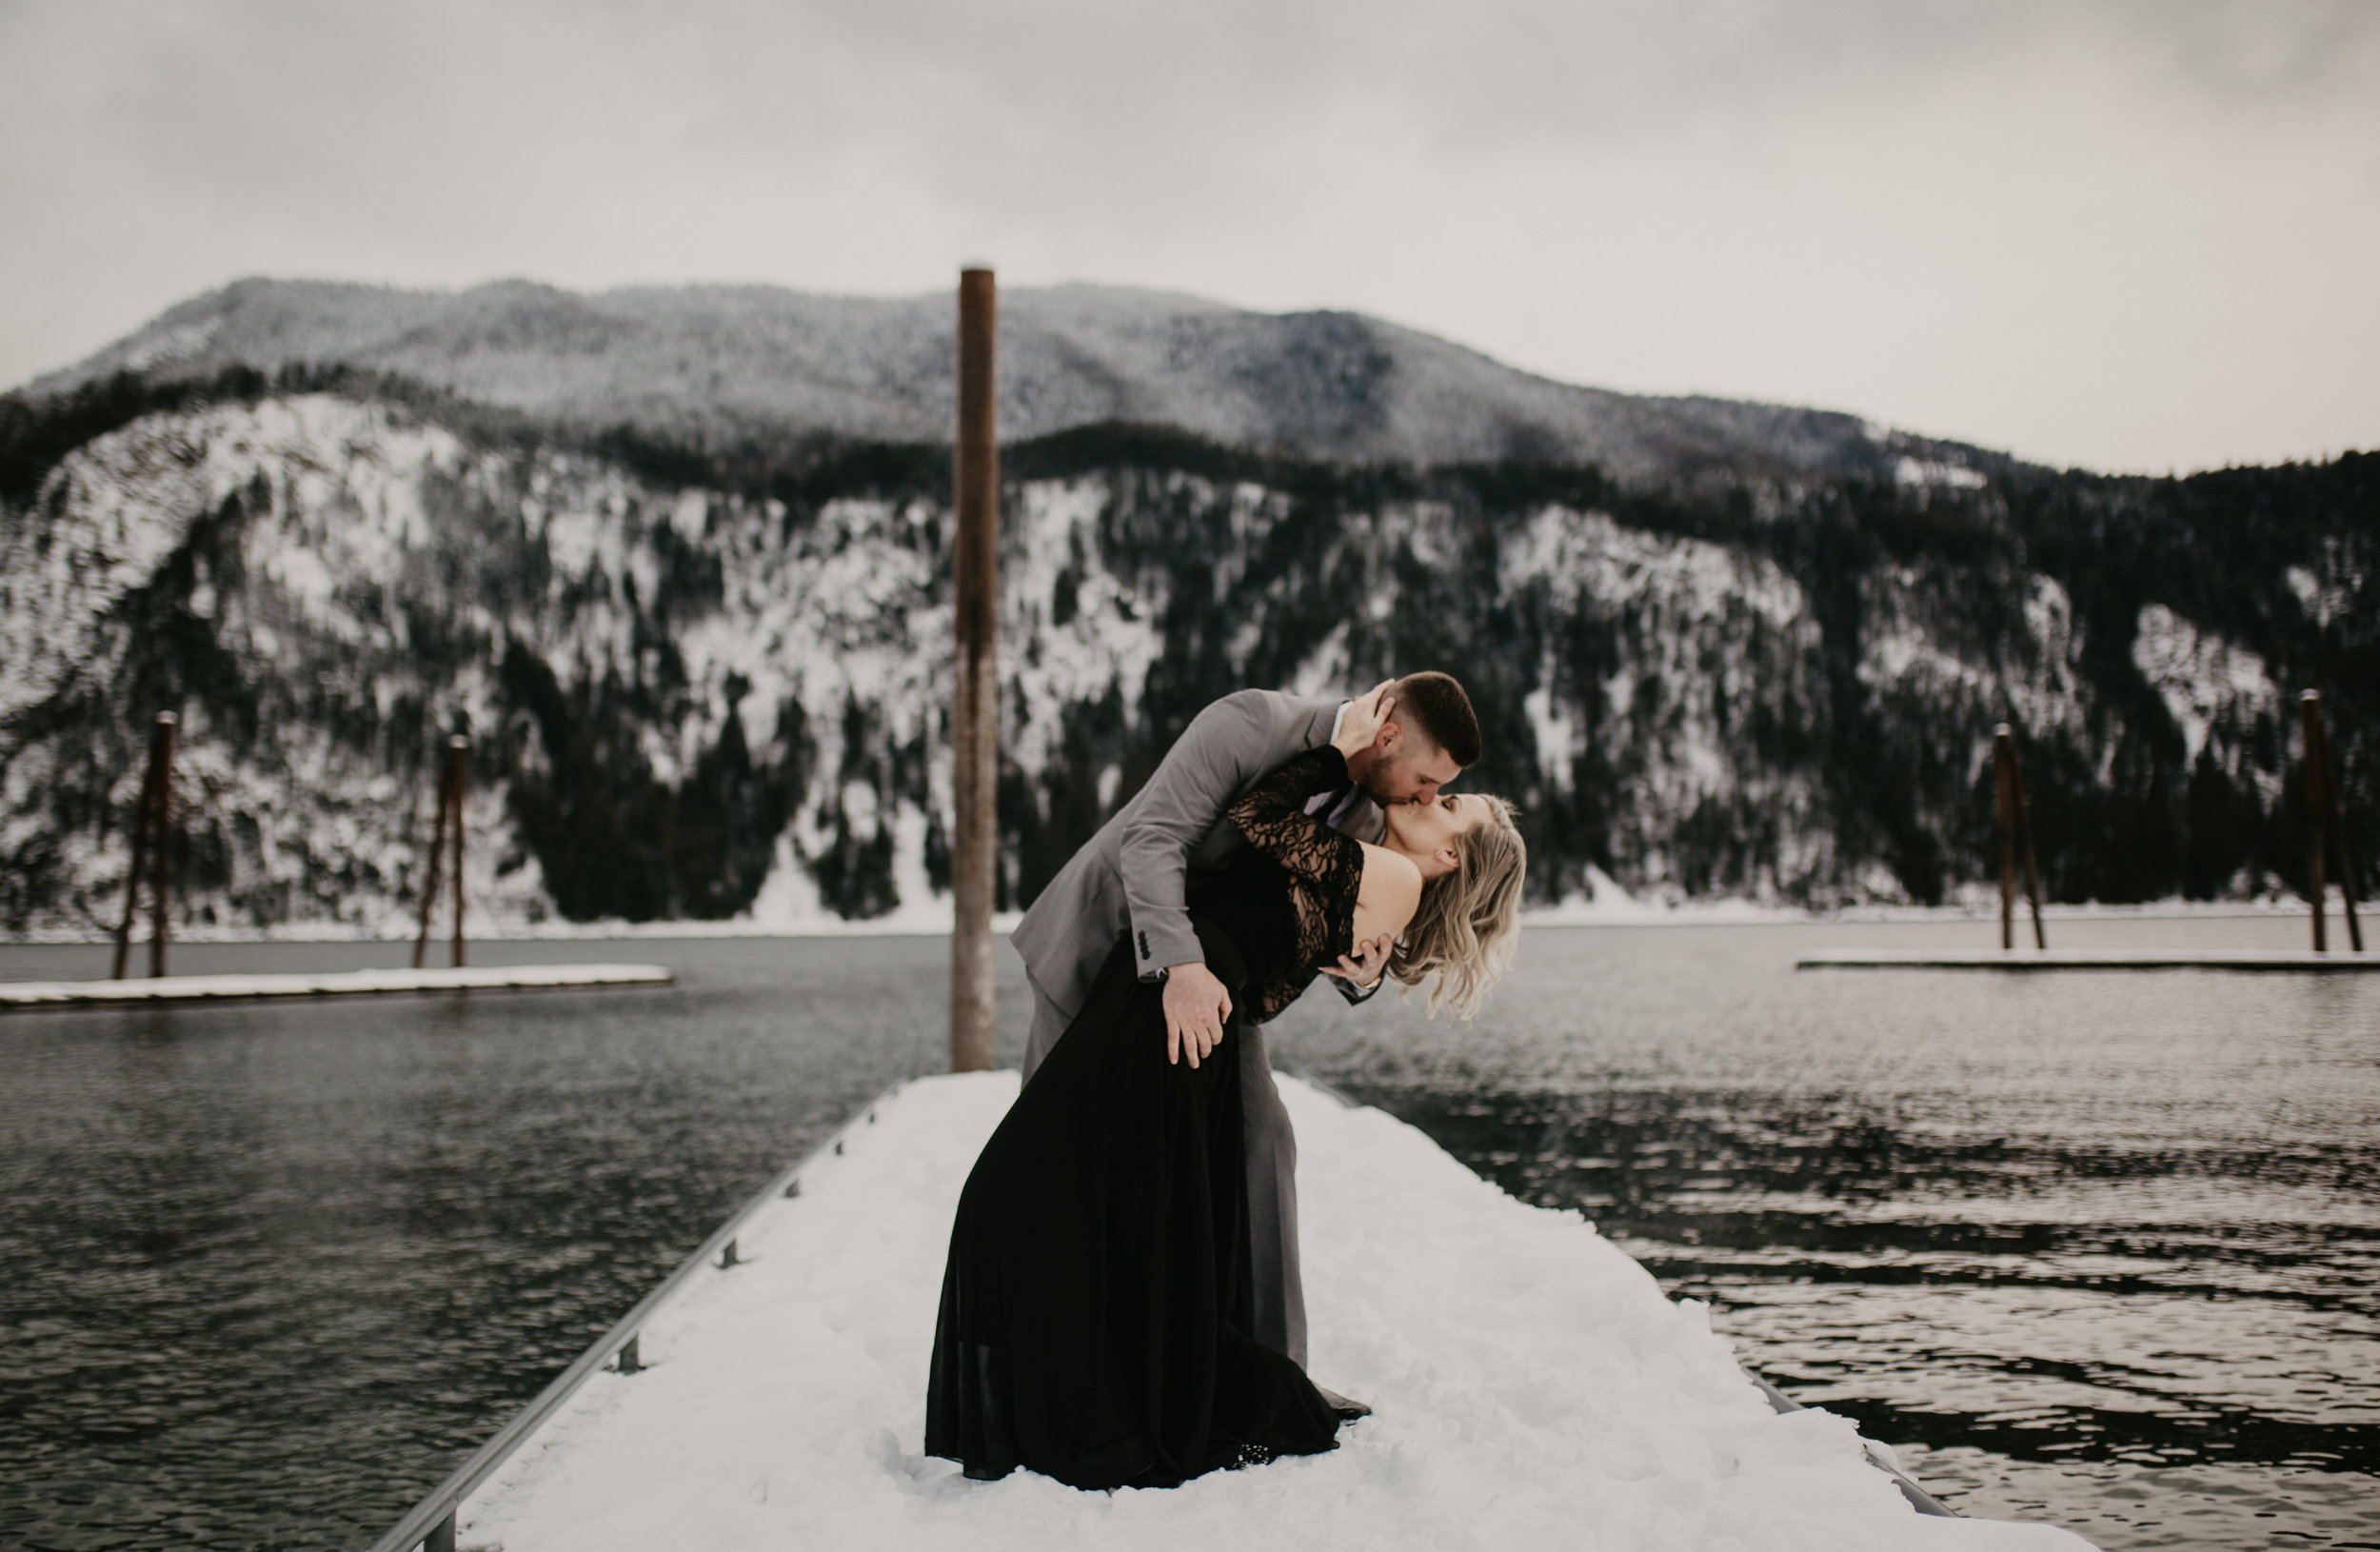 Intimate Bride and Groom wedding session in Idaho